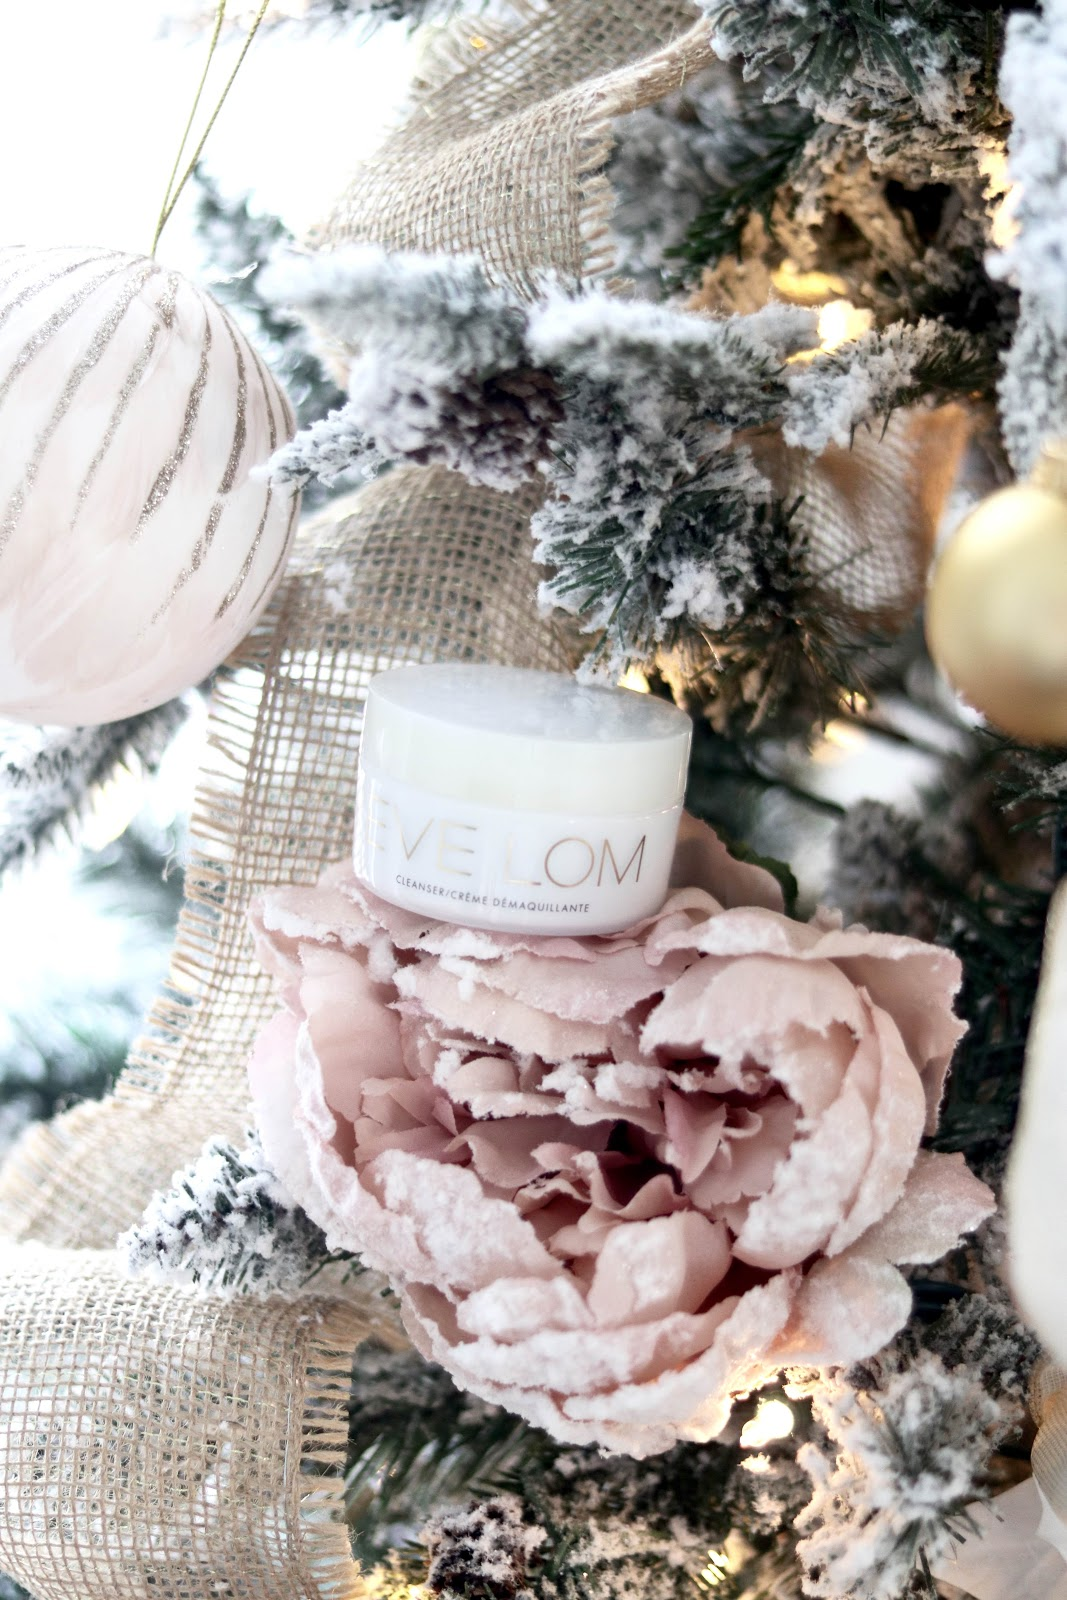 Holiday Beauty Sets Eve Lom Cleanser Review